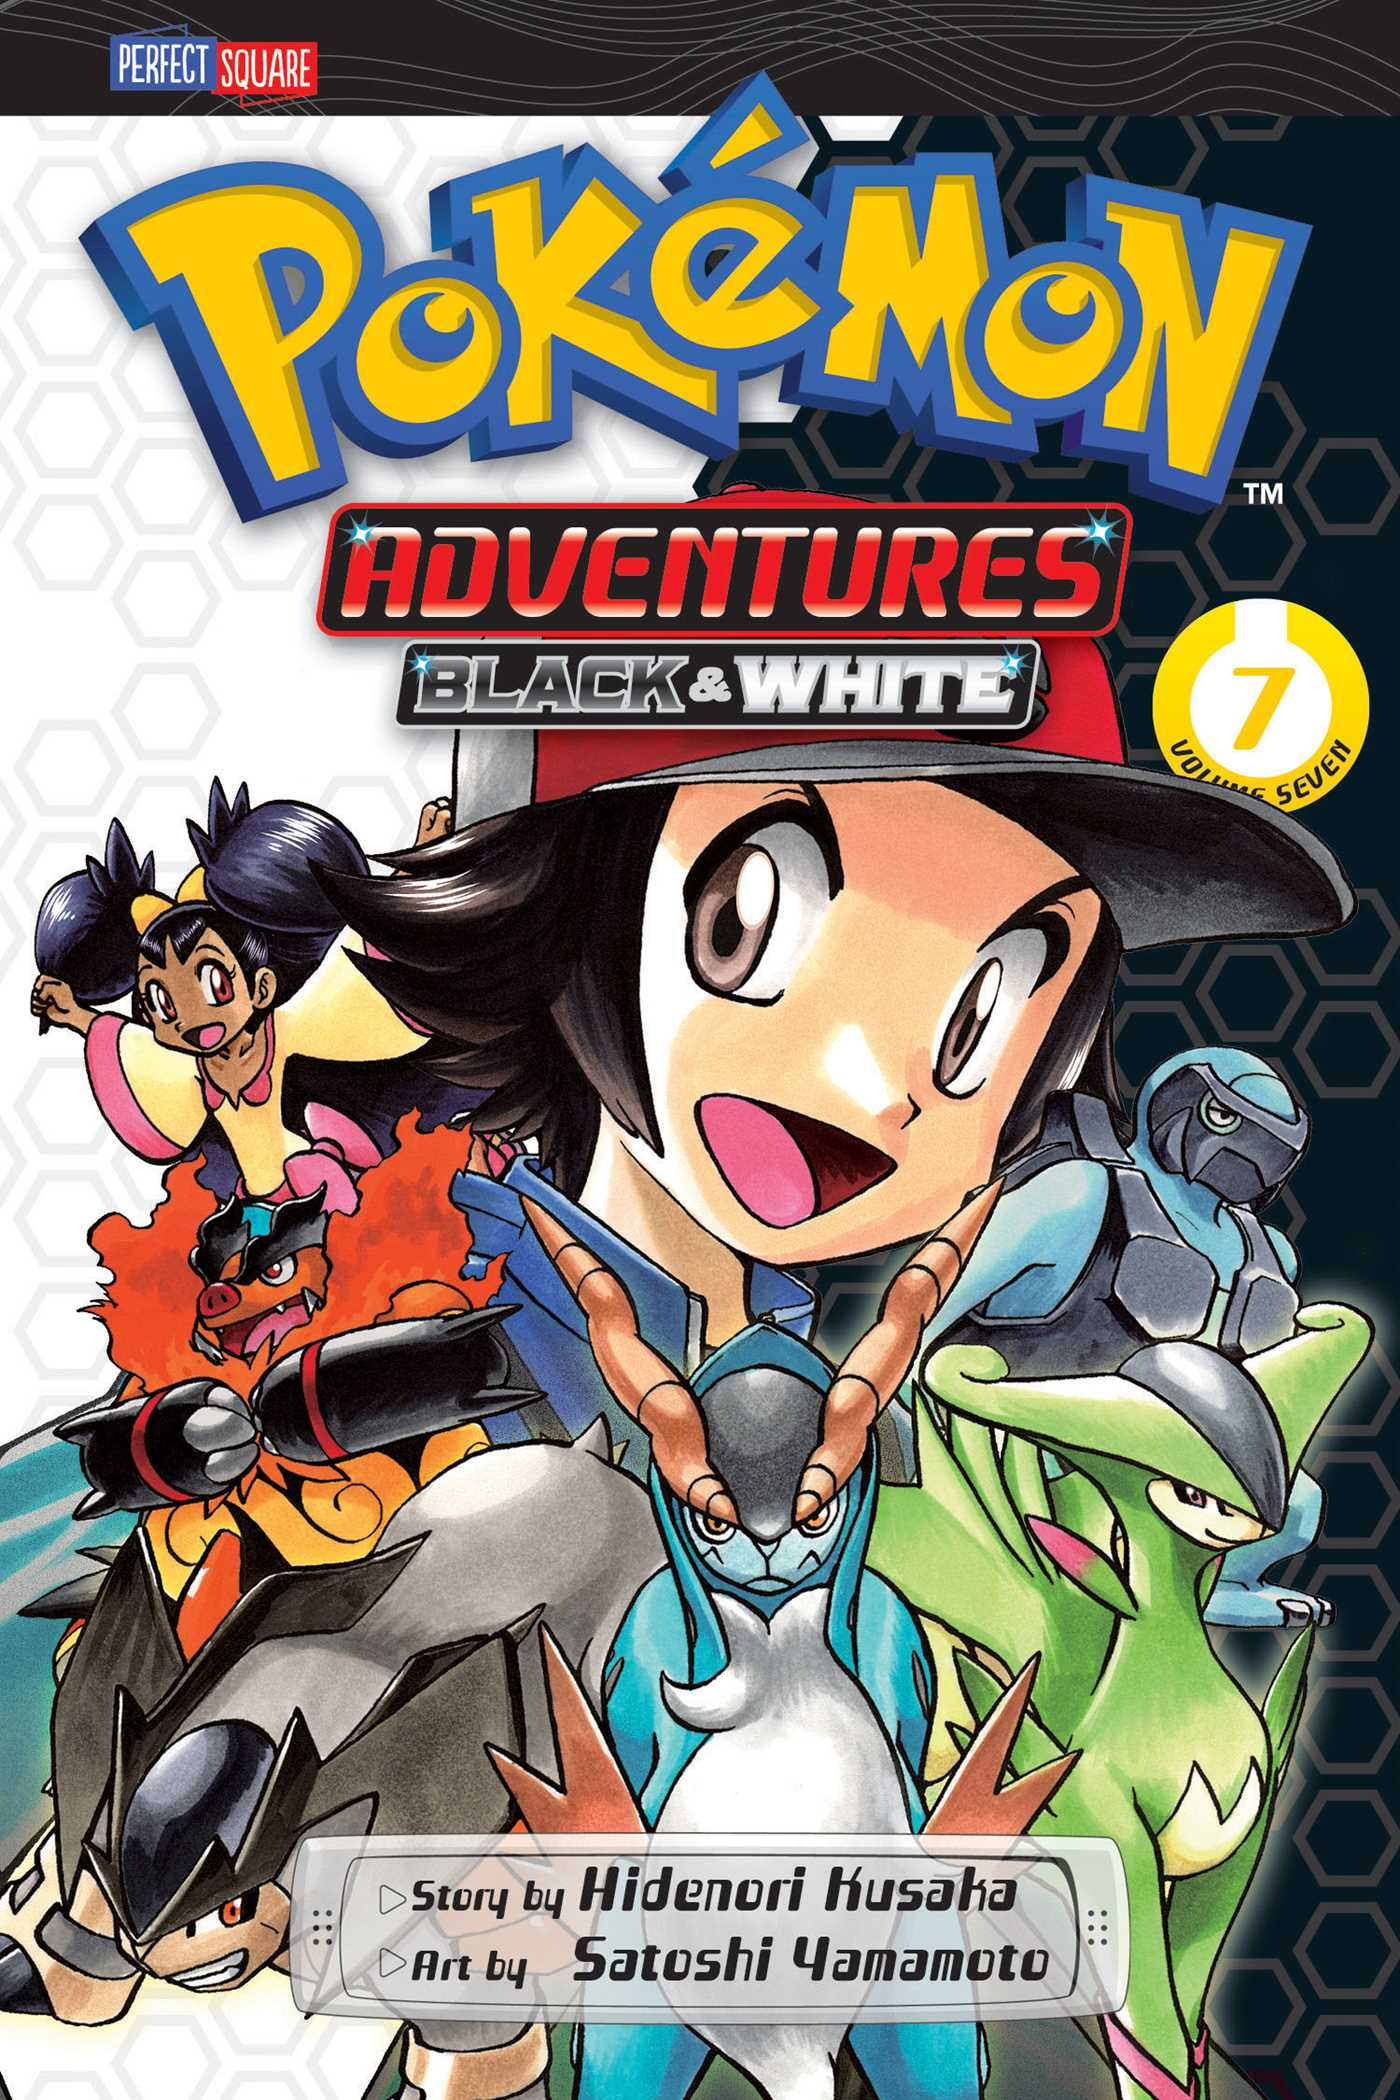 Pokemon-adventures-black-and-white-vol-7-9781421578361_hr